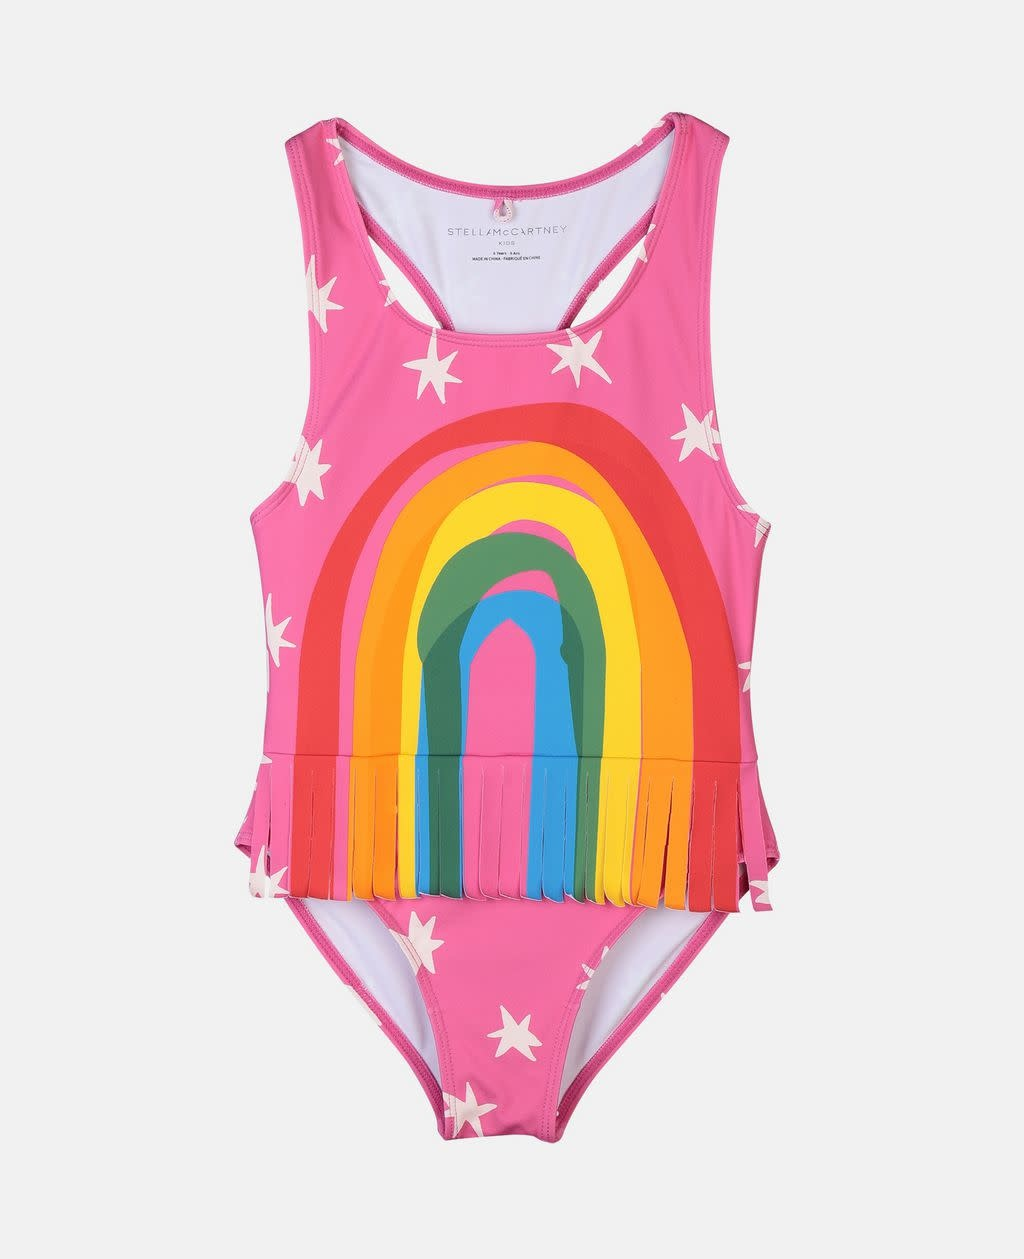 STELLA MCCARTNEY Rainbow One Piece Swimsuit with Fringe